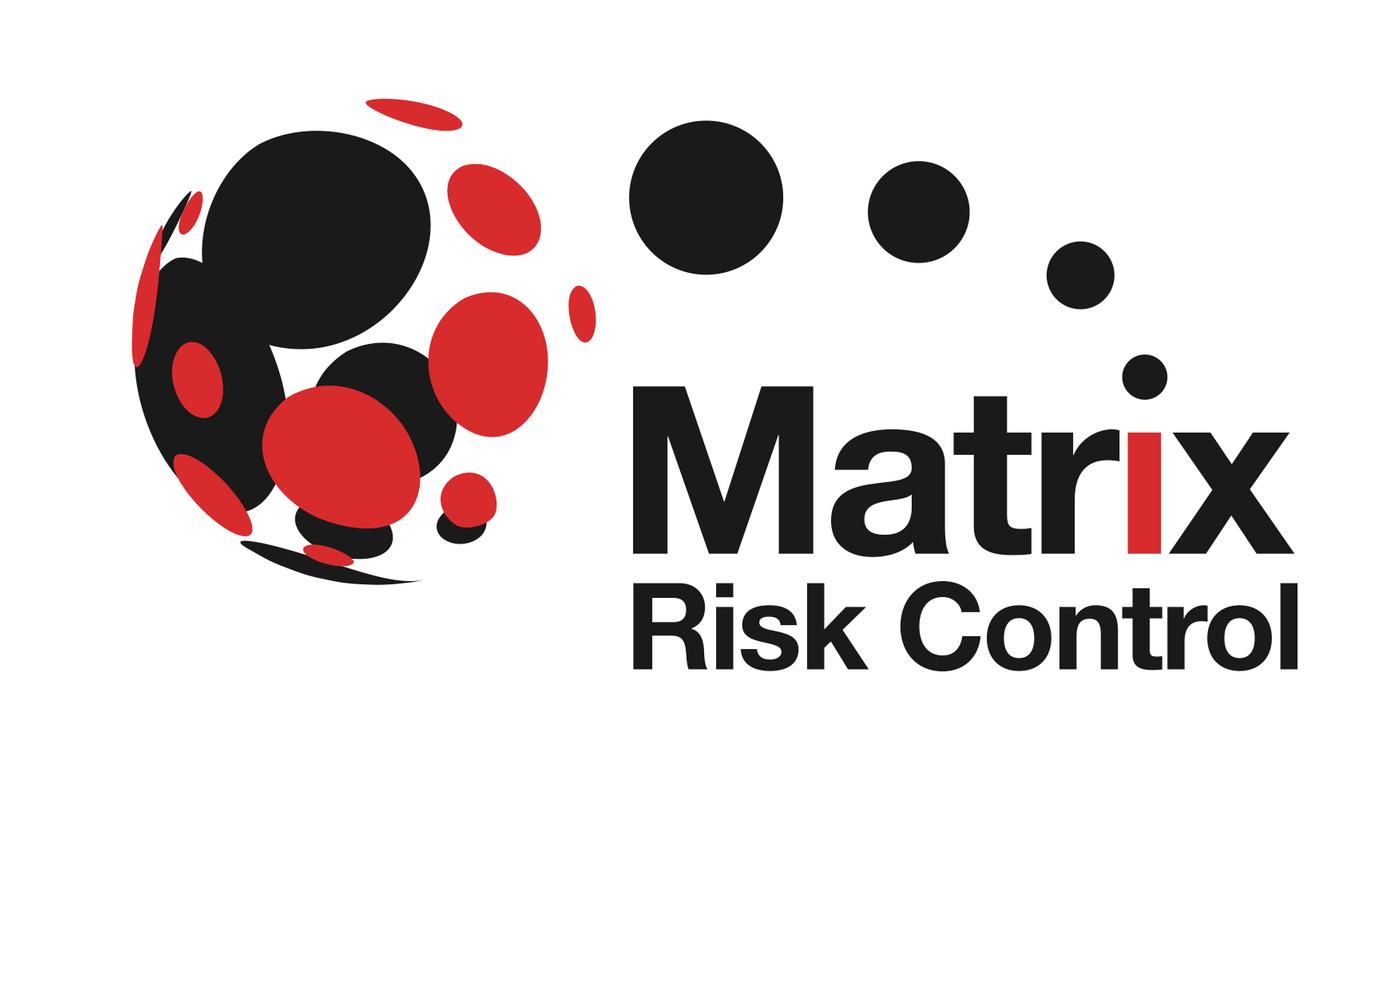 Matrix Risk Control